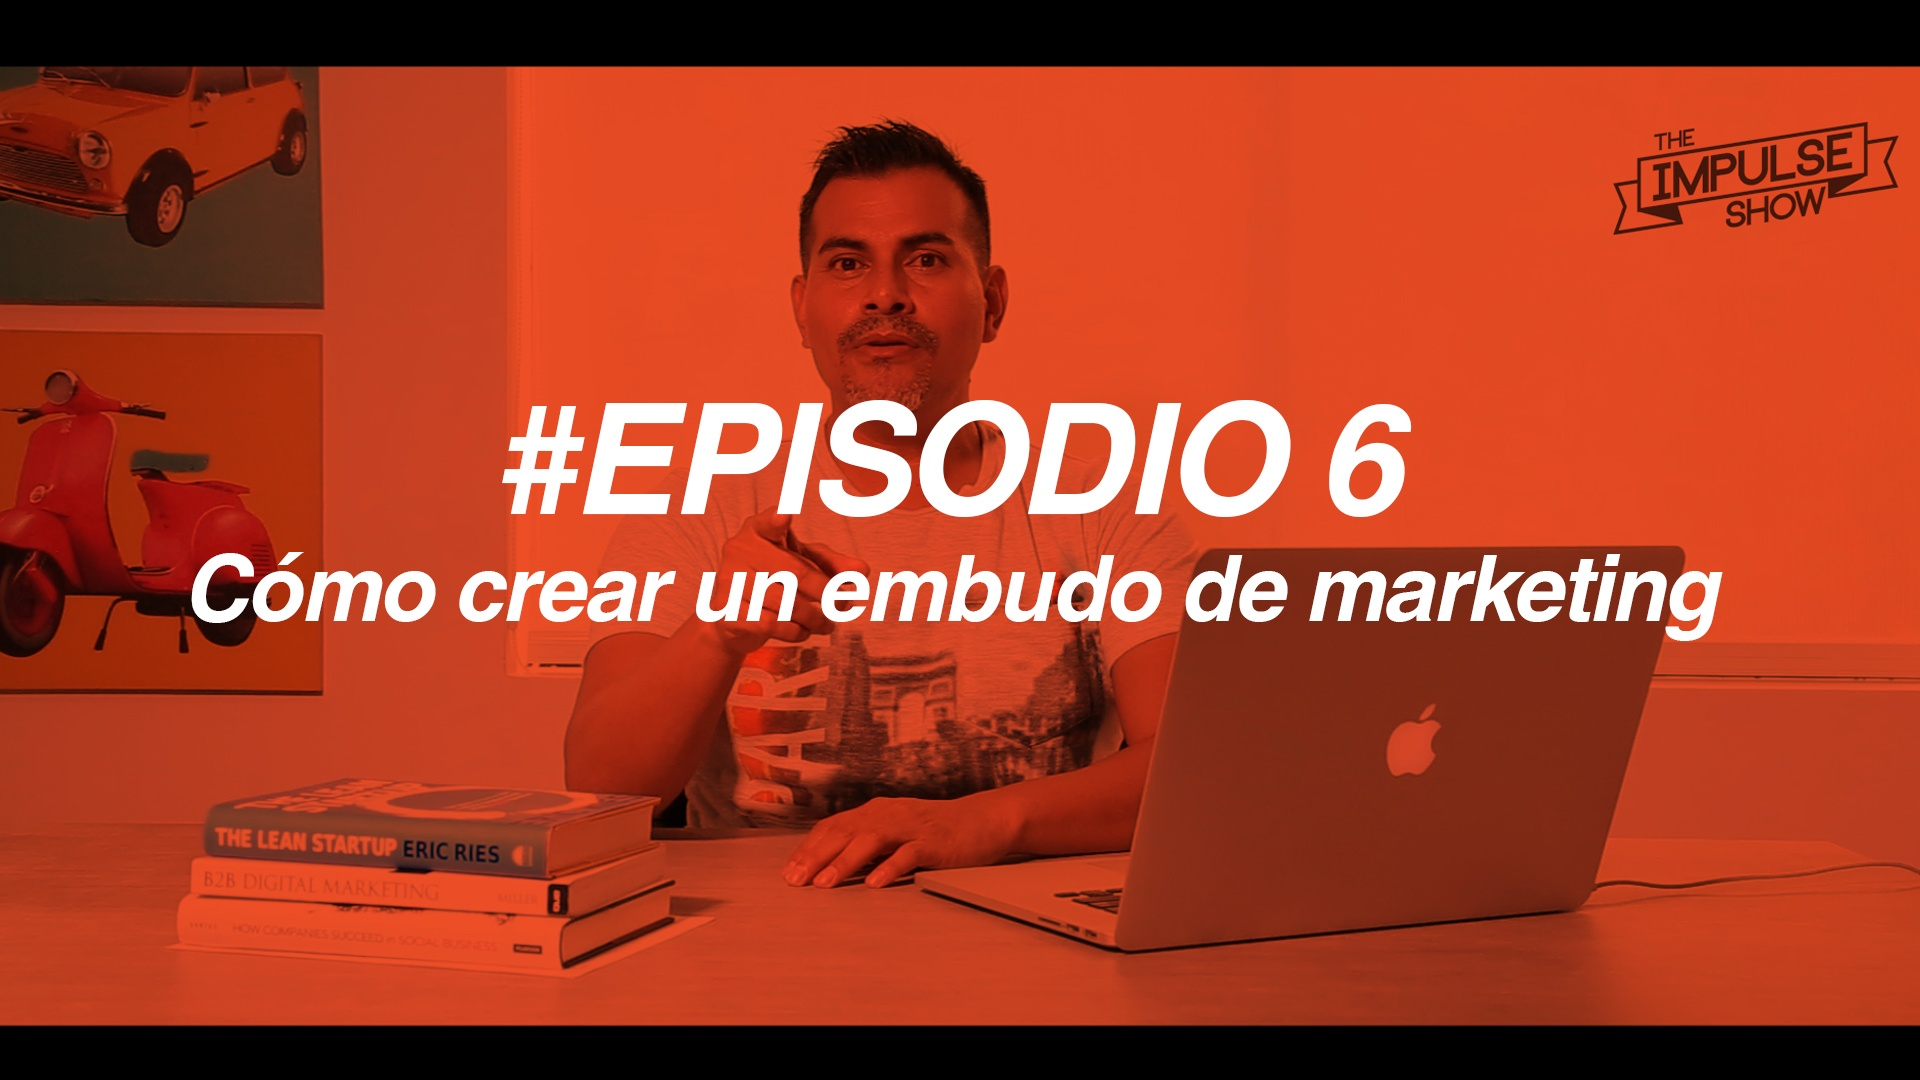 episodio-6-crear-embudo-marketing-.jpg